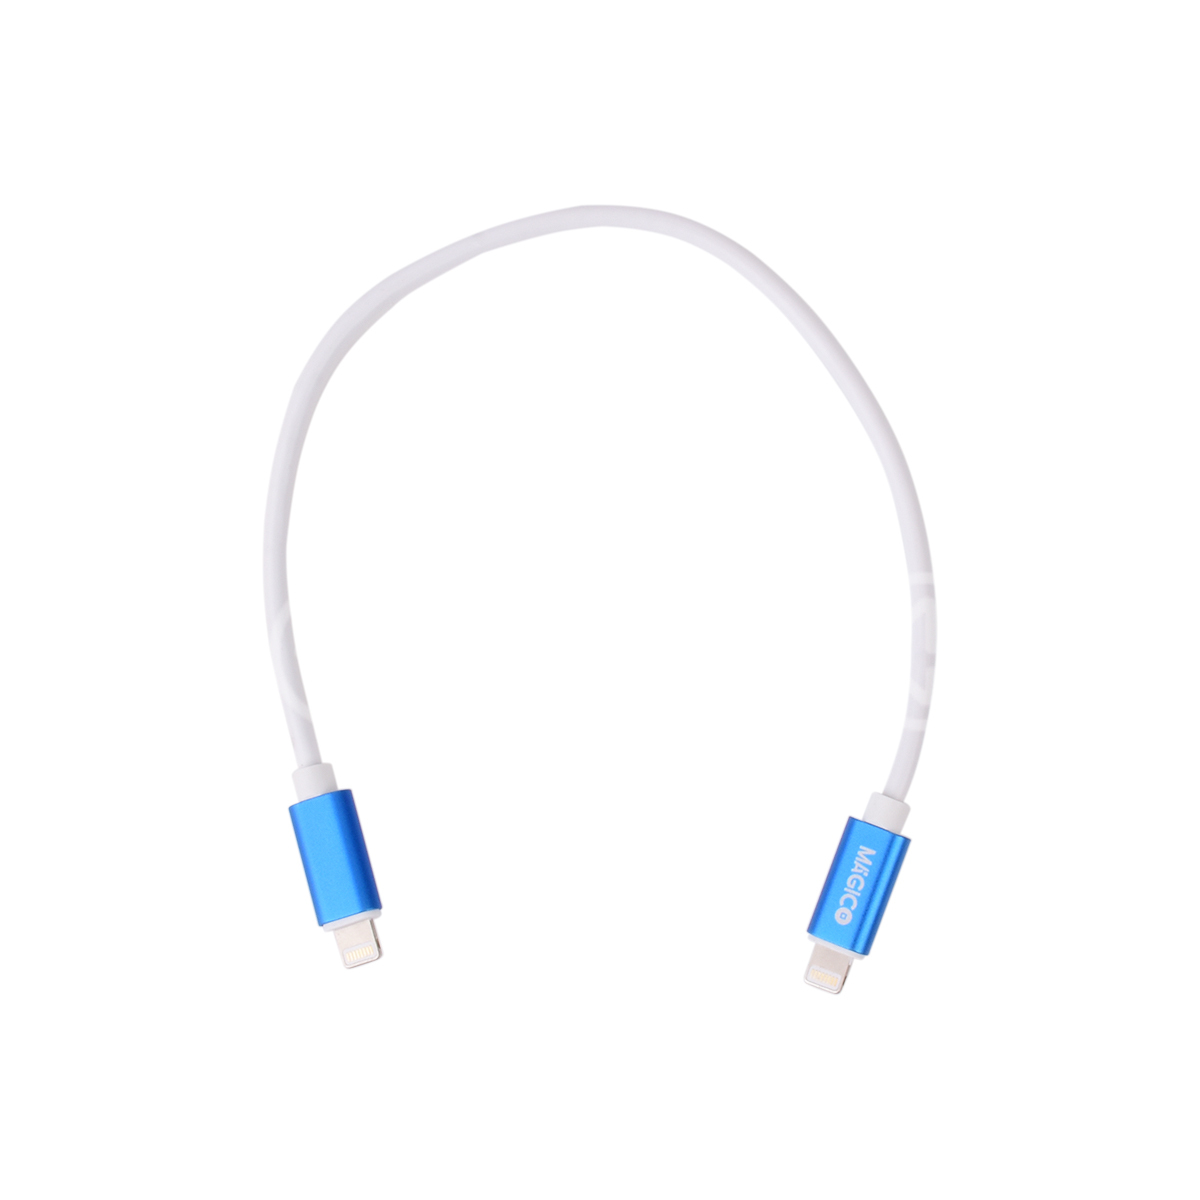 Lighting To Lighting OTG Data Cable For iPhone